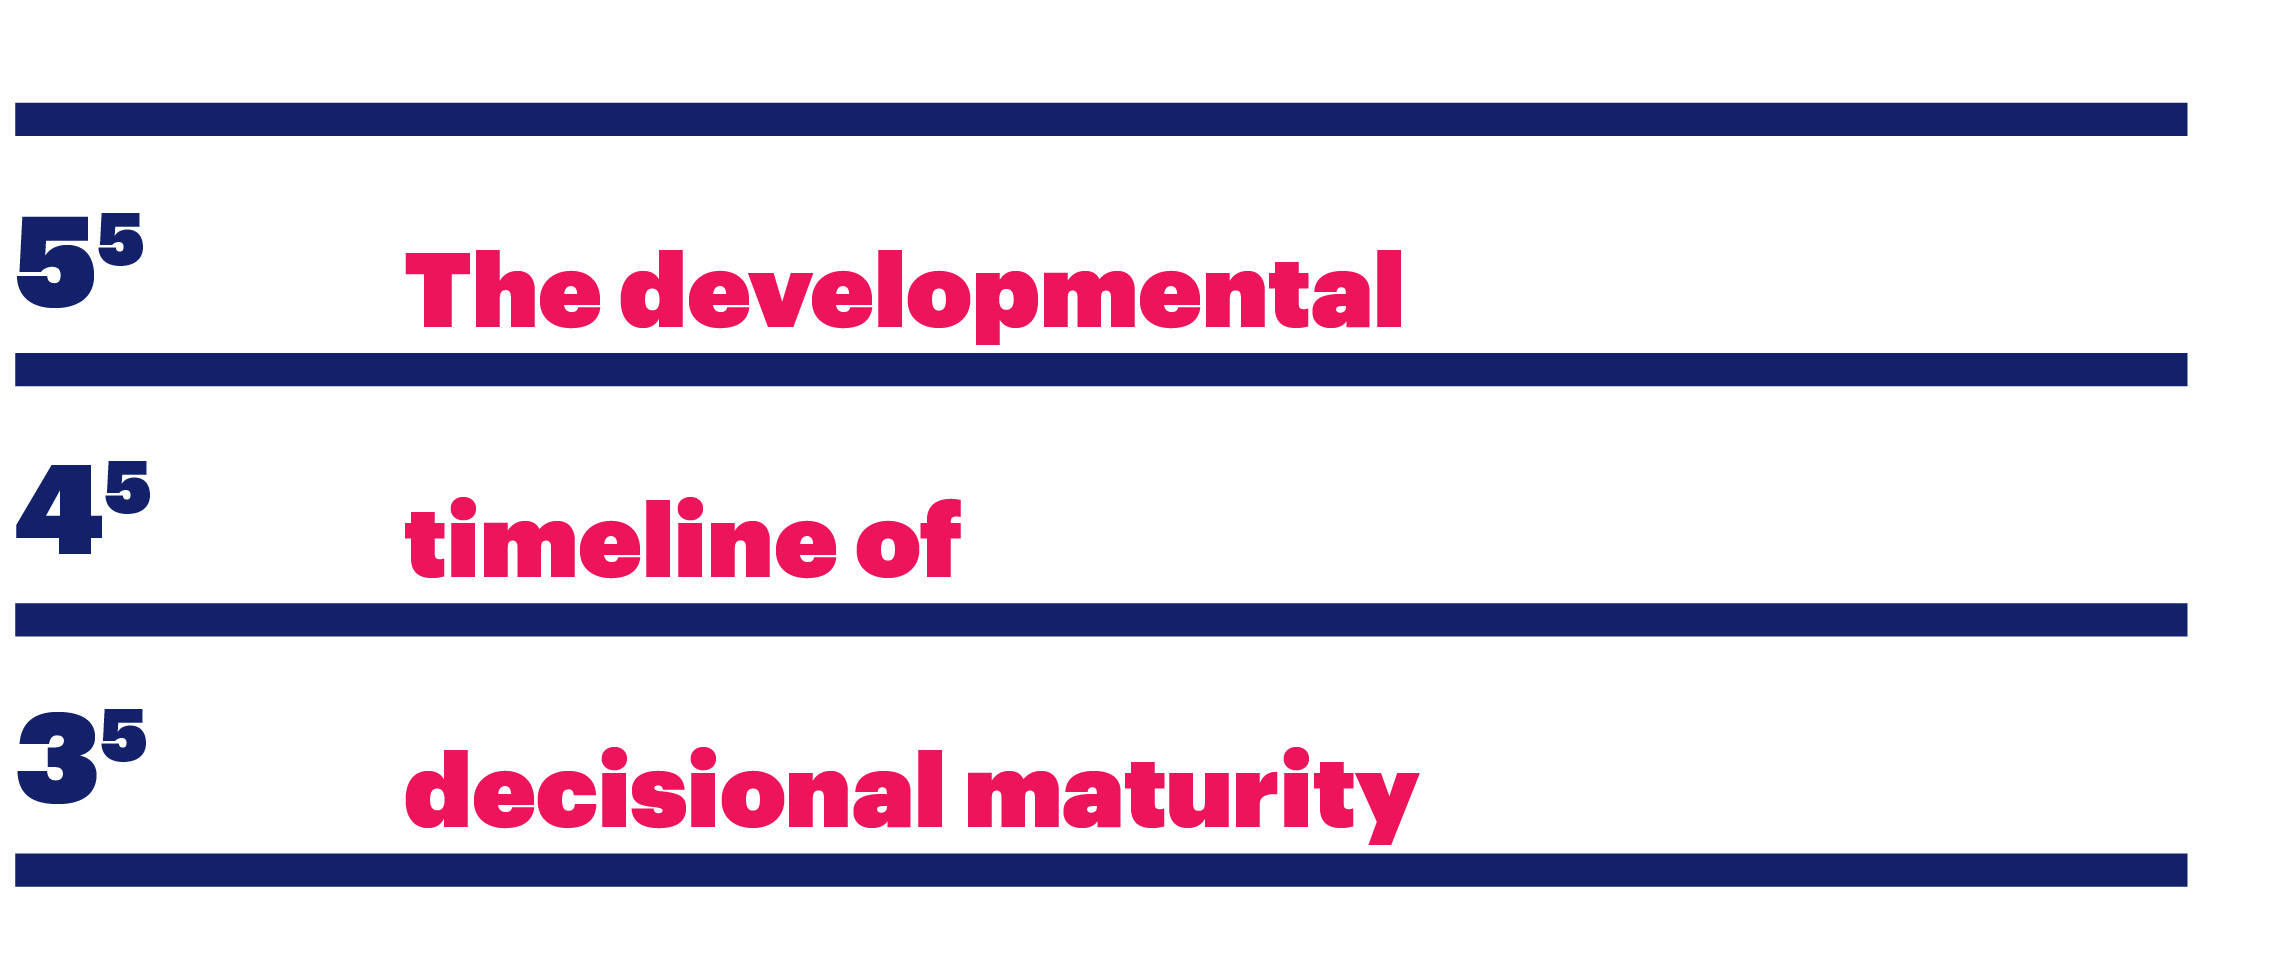 Section title: The developmental timeline of decisional maturity